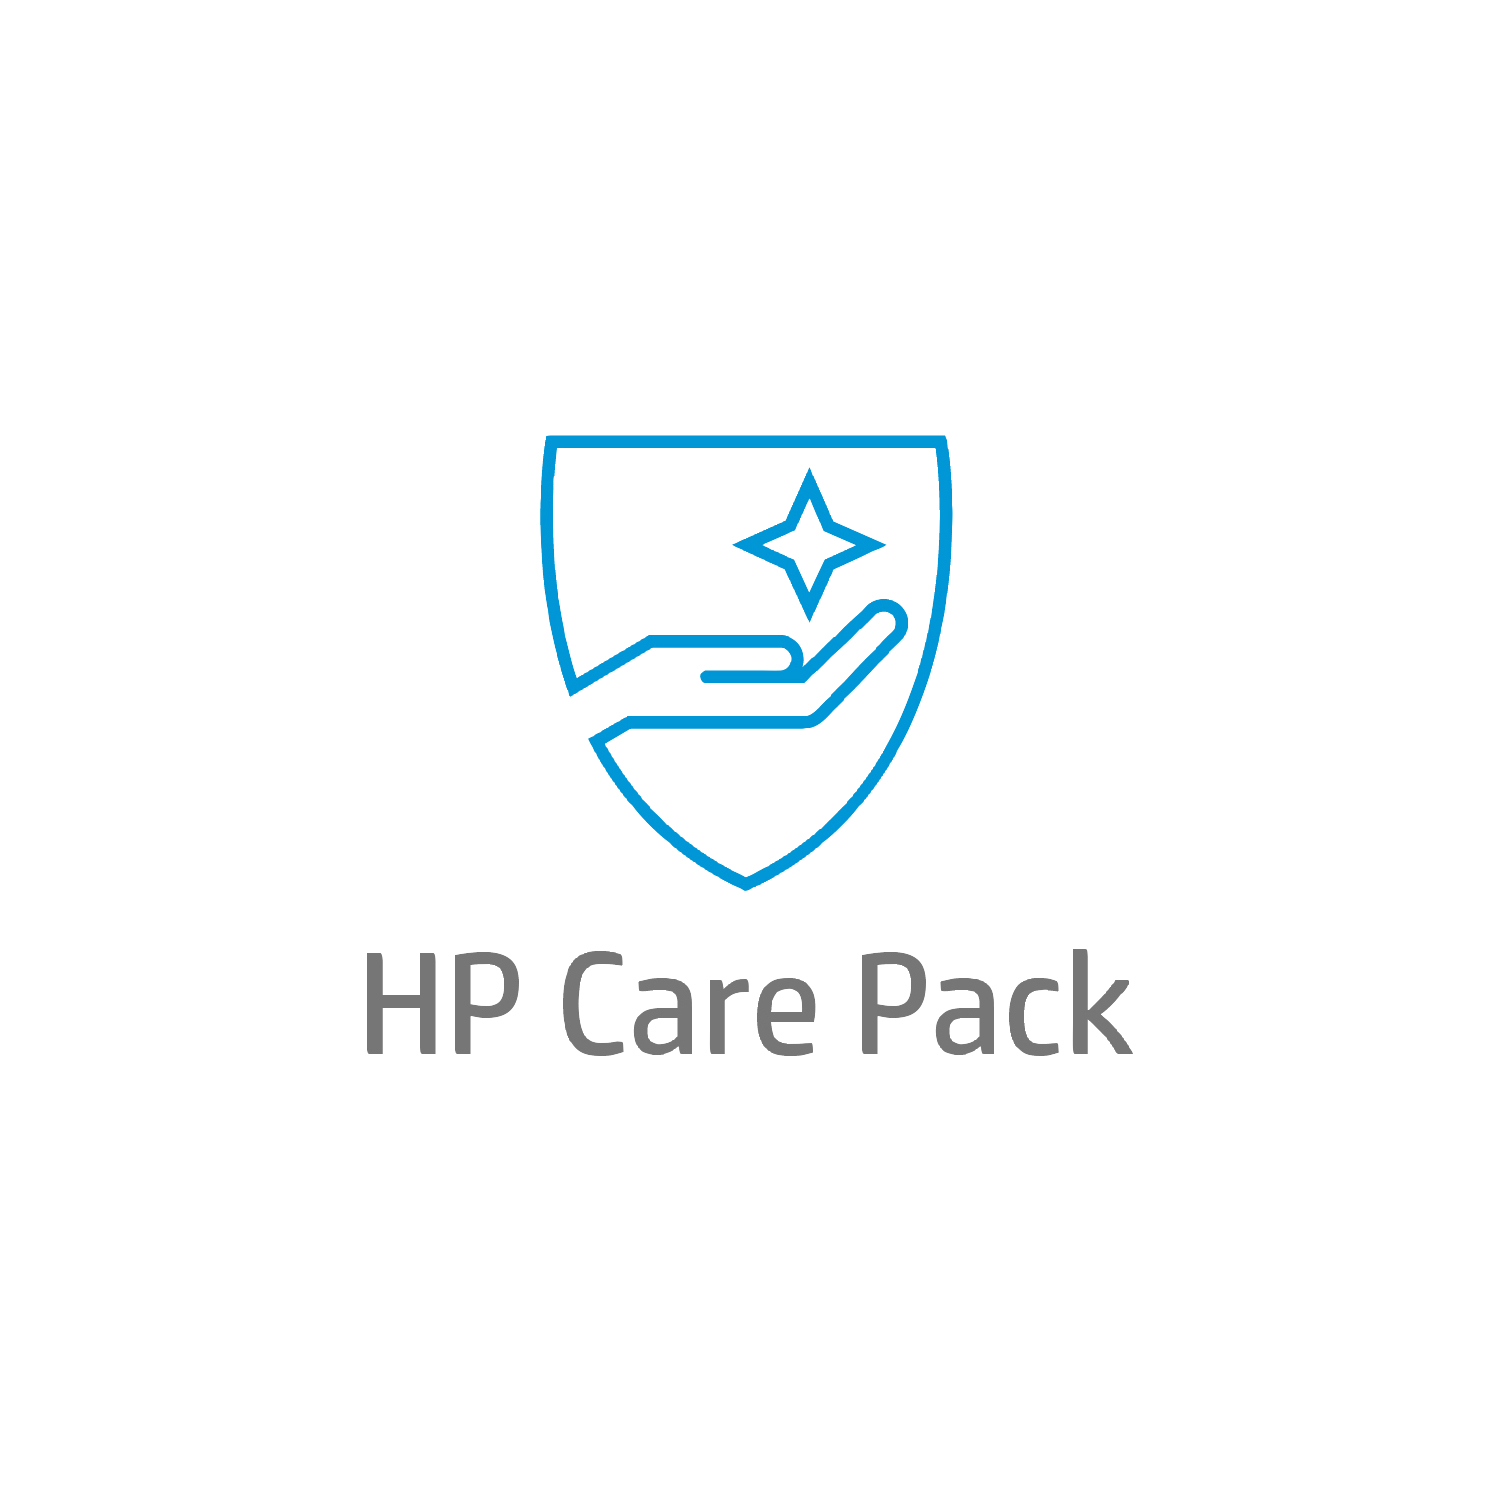 HP 3y PickupReturn/ADP G2 NB Only SVC Commercial value NB/TAB PC w/1/1/0 Wty,3y Pickup Rtn Svc w/ADP G2, CPU only, HP pickup, repair/replace, return. 8am-5pm, Std bus days excl HP hol. 3 days TAT *CAREPACKS ARE NOT RETURNABLE OR REFUNDABLE* - UK712E